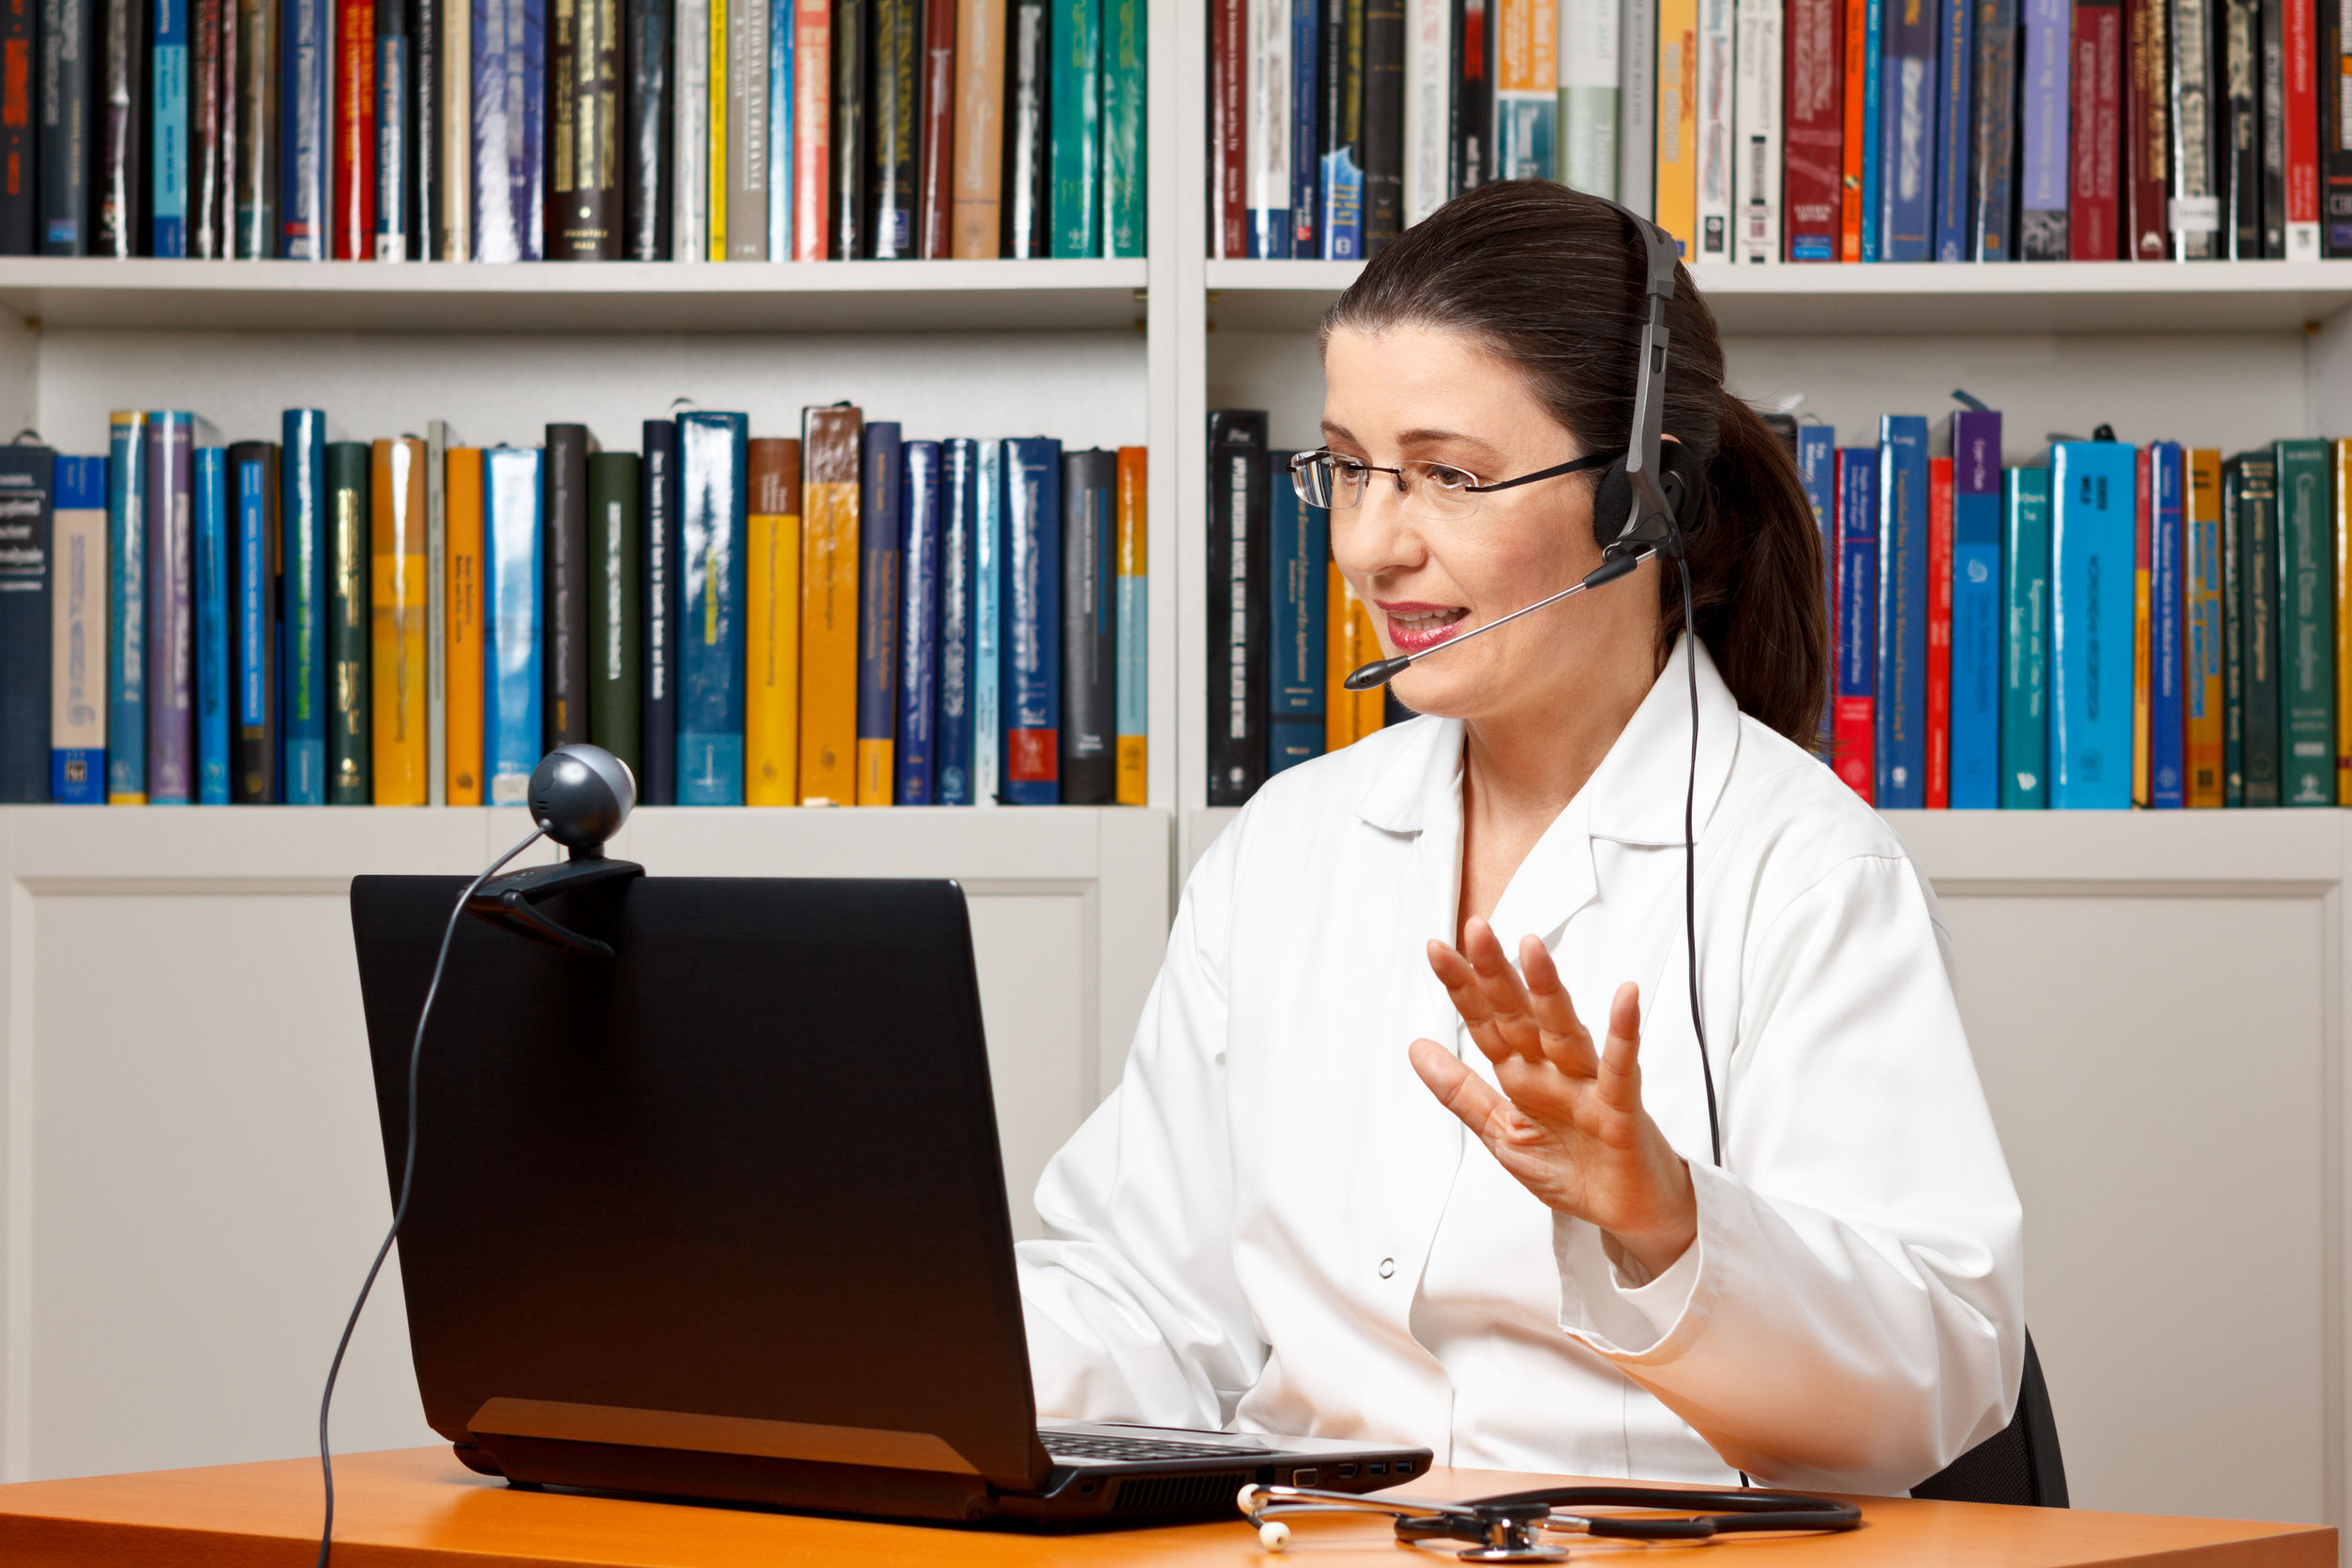 Global Telehealth Industry (2020 to 2025) – High Utility in Combating Infectious Diseases and Epidemics Presents Opportunities